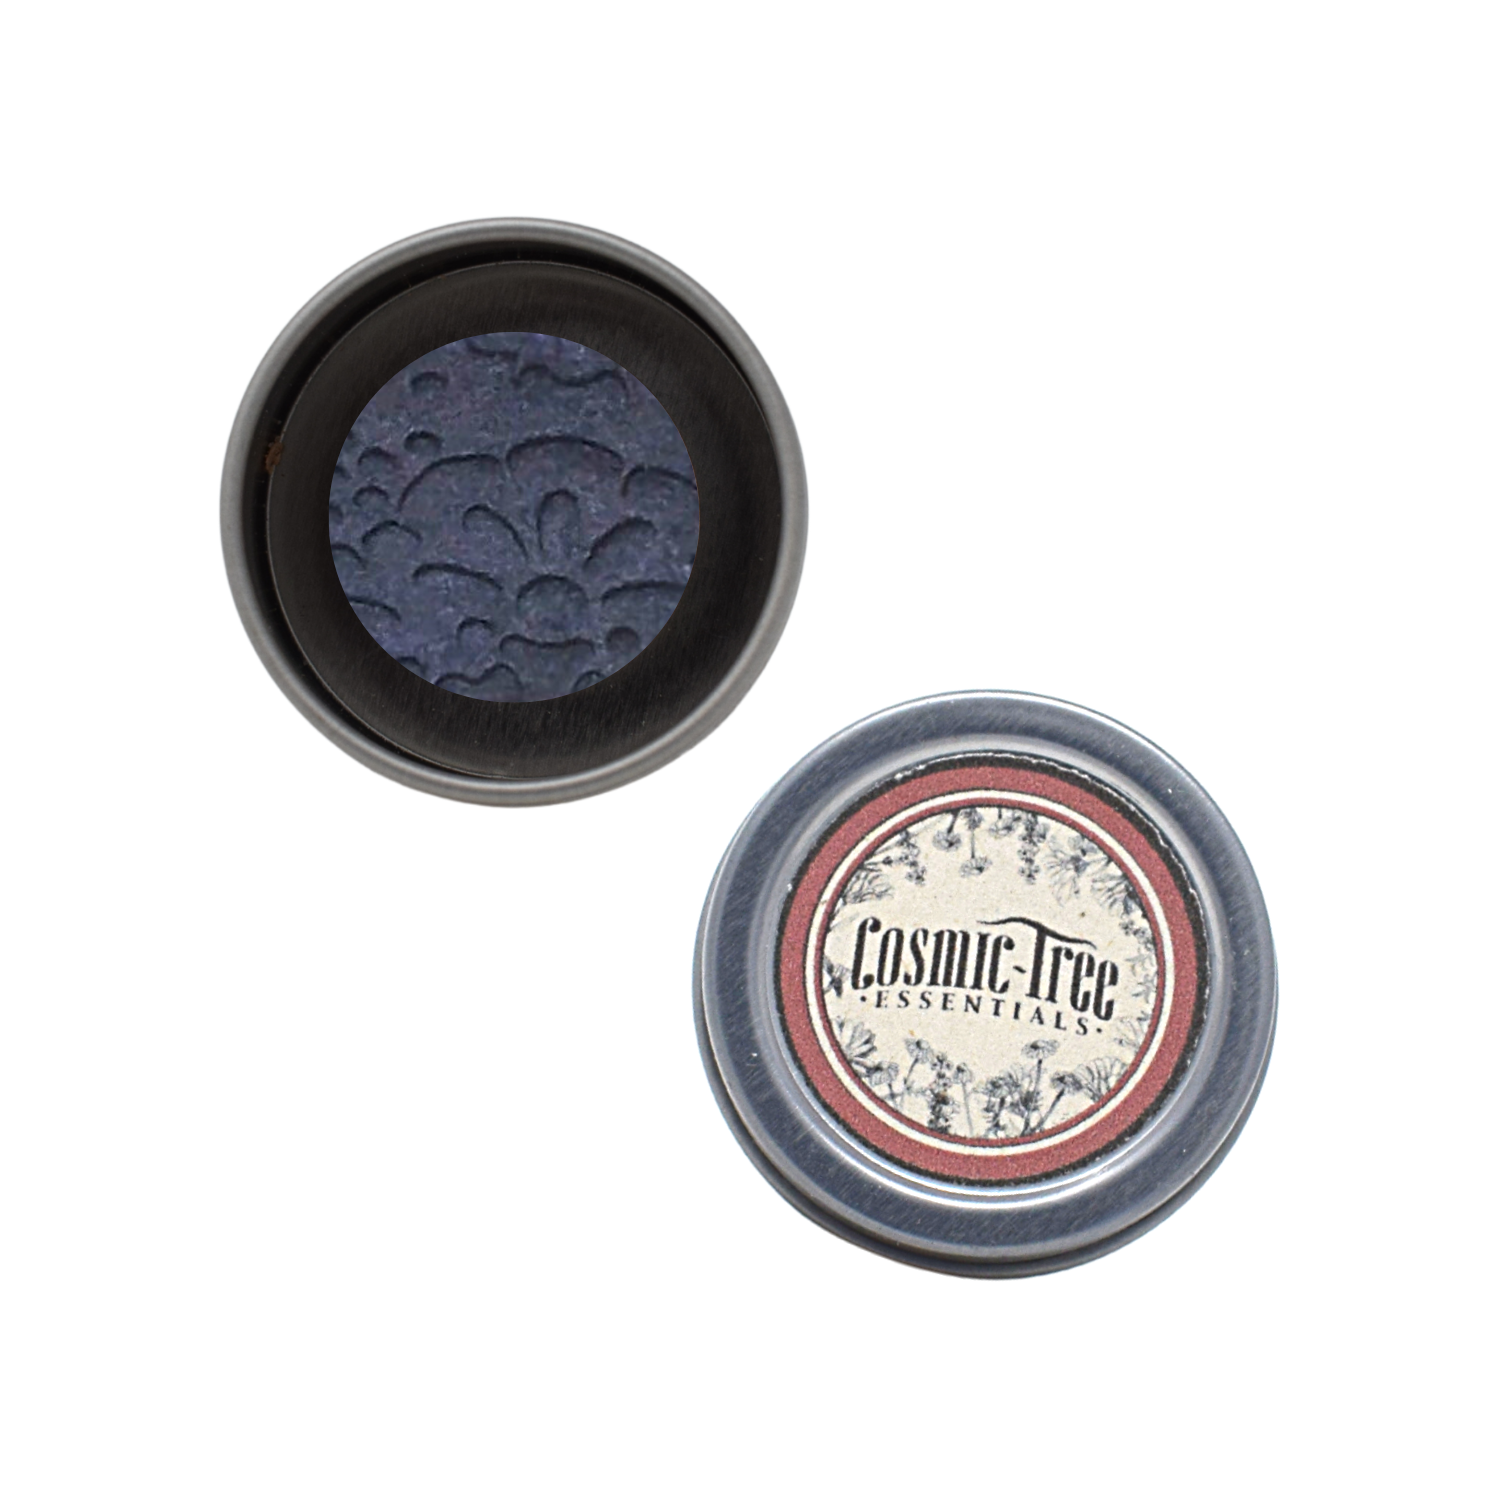 Crucible Pressed Eye Shadow in Midnight Blue